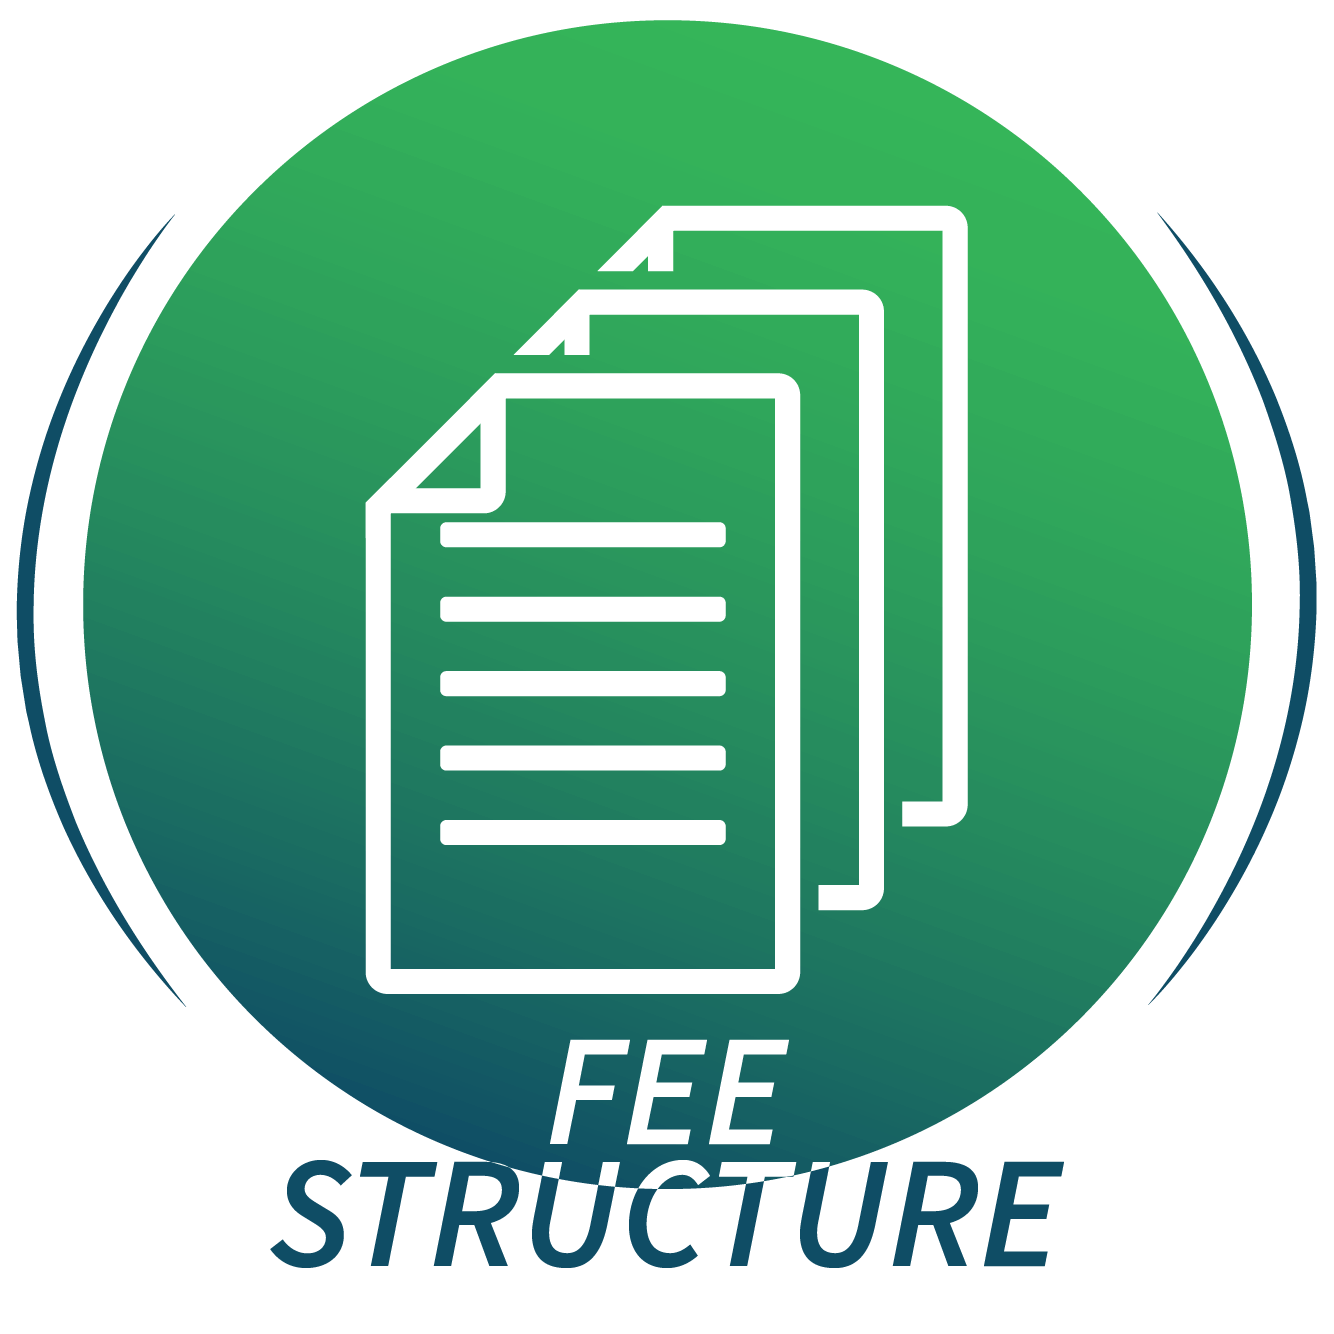 Doctors Fees Structure